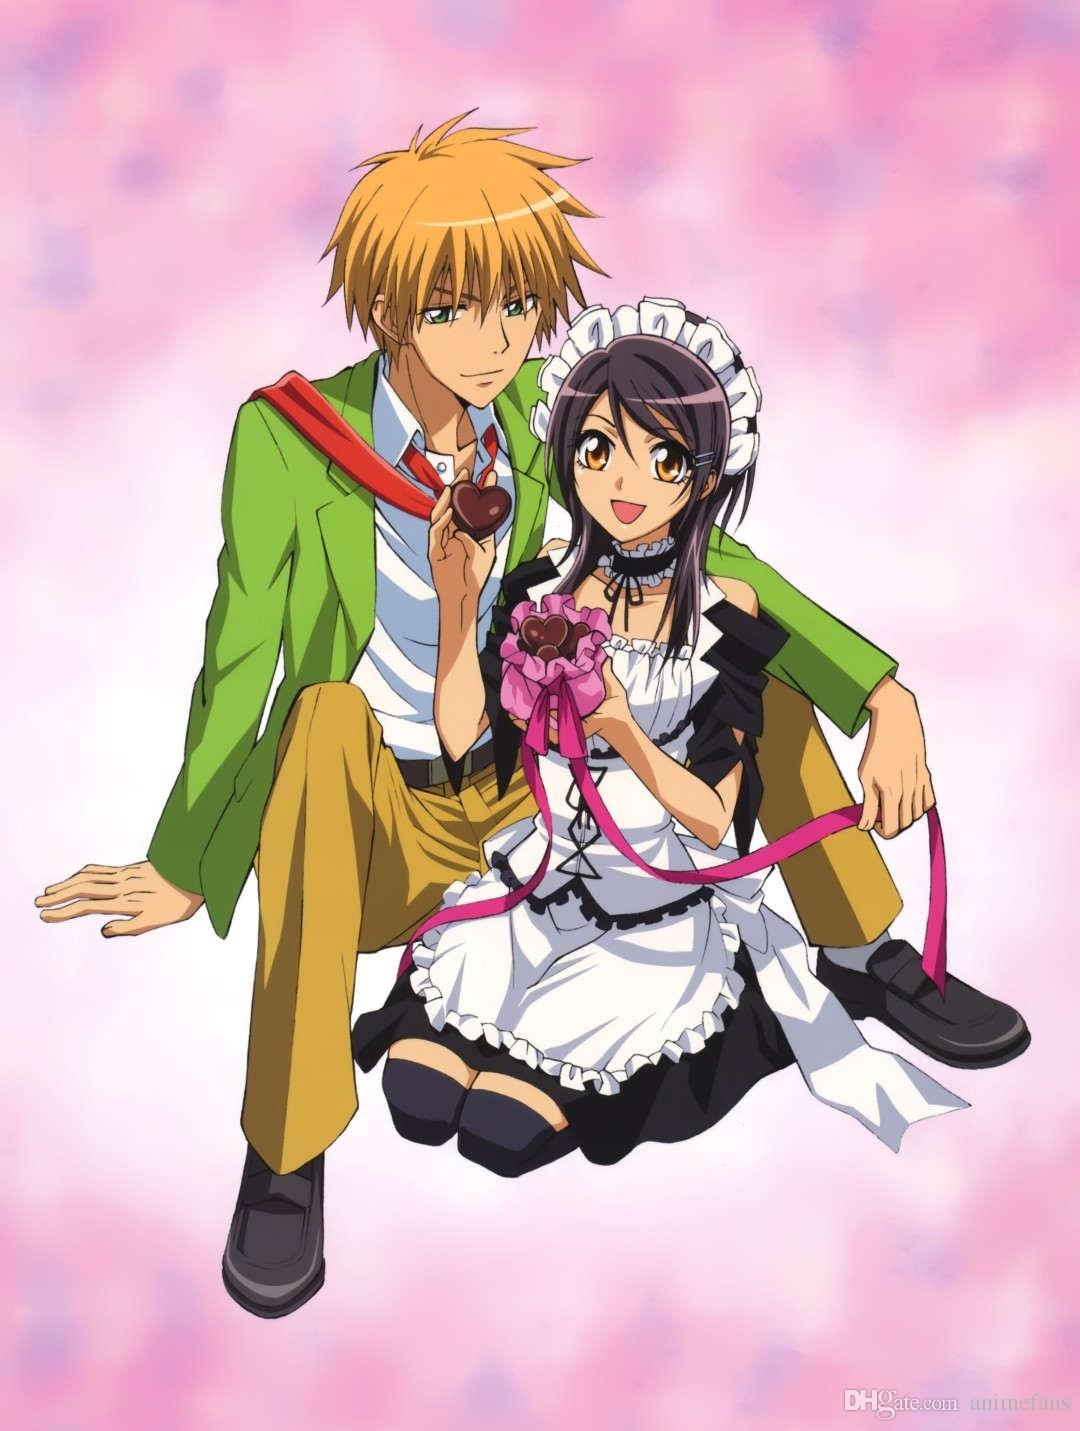 Cute Teal Wallpapers For Moms 150x200cm Hot Anime Maid Sama Characters Ayuzawa Misaki